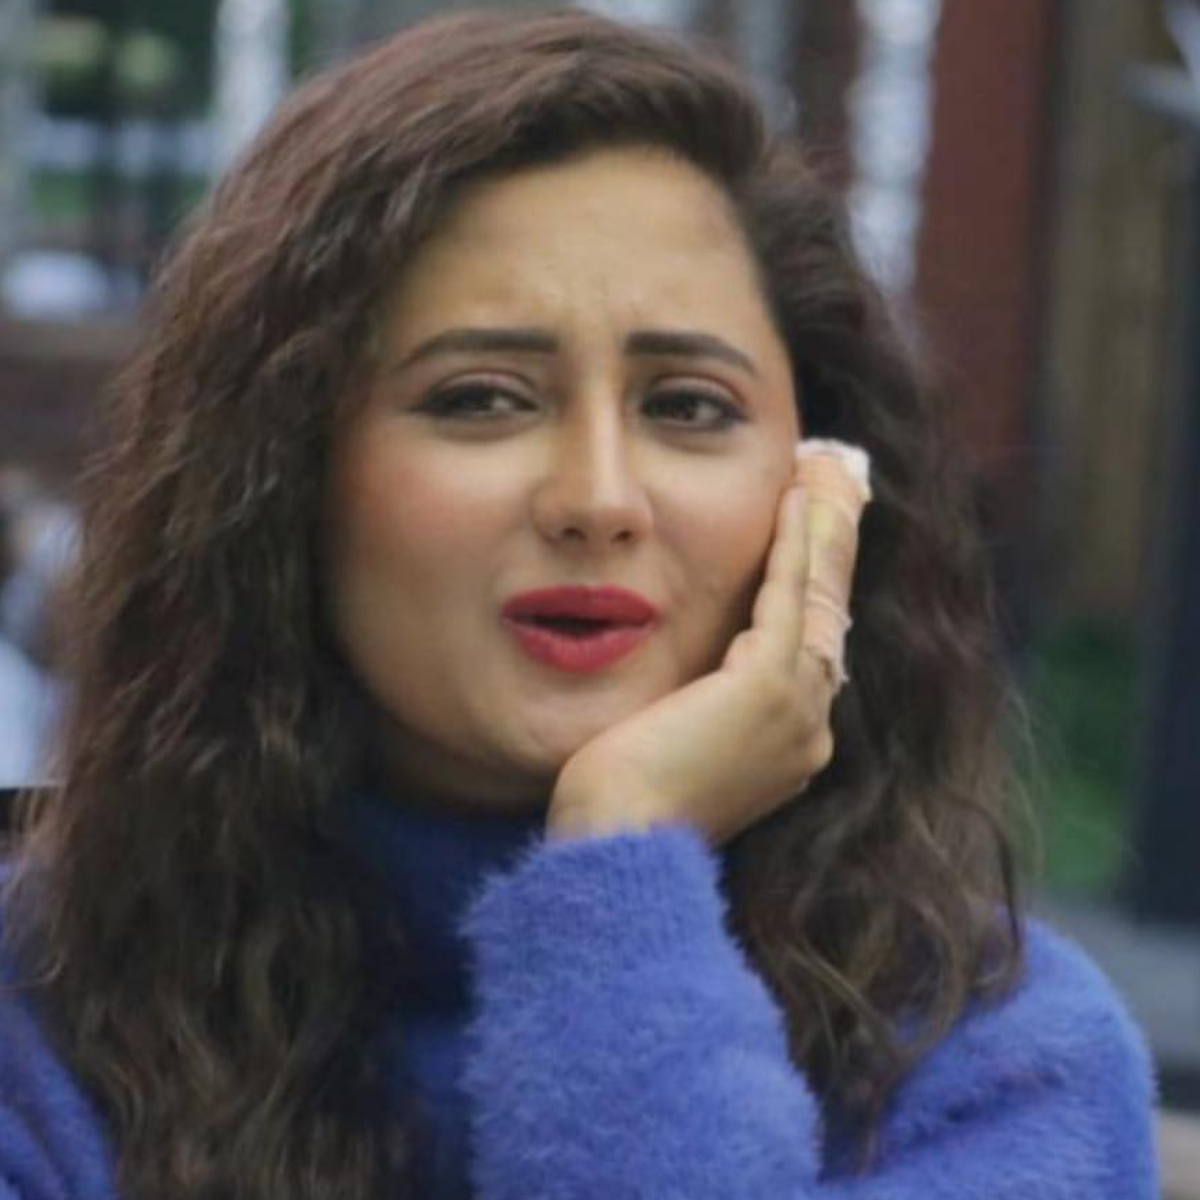 Bigg Boss 13: Rashami Desai gets immense support from fans as they trend 'Queen Of Hearts Rashami' on Twitter